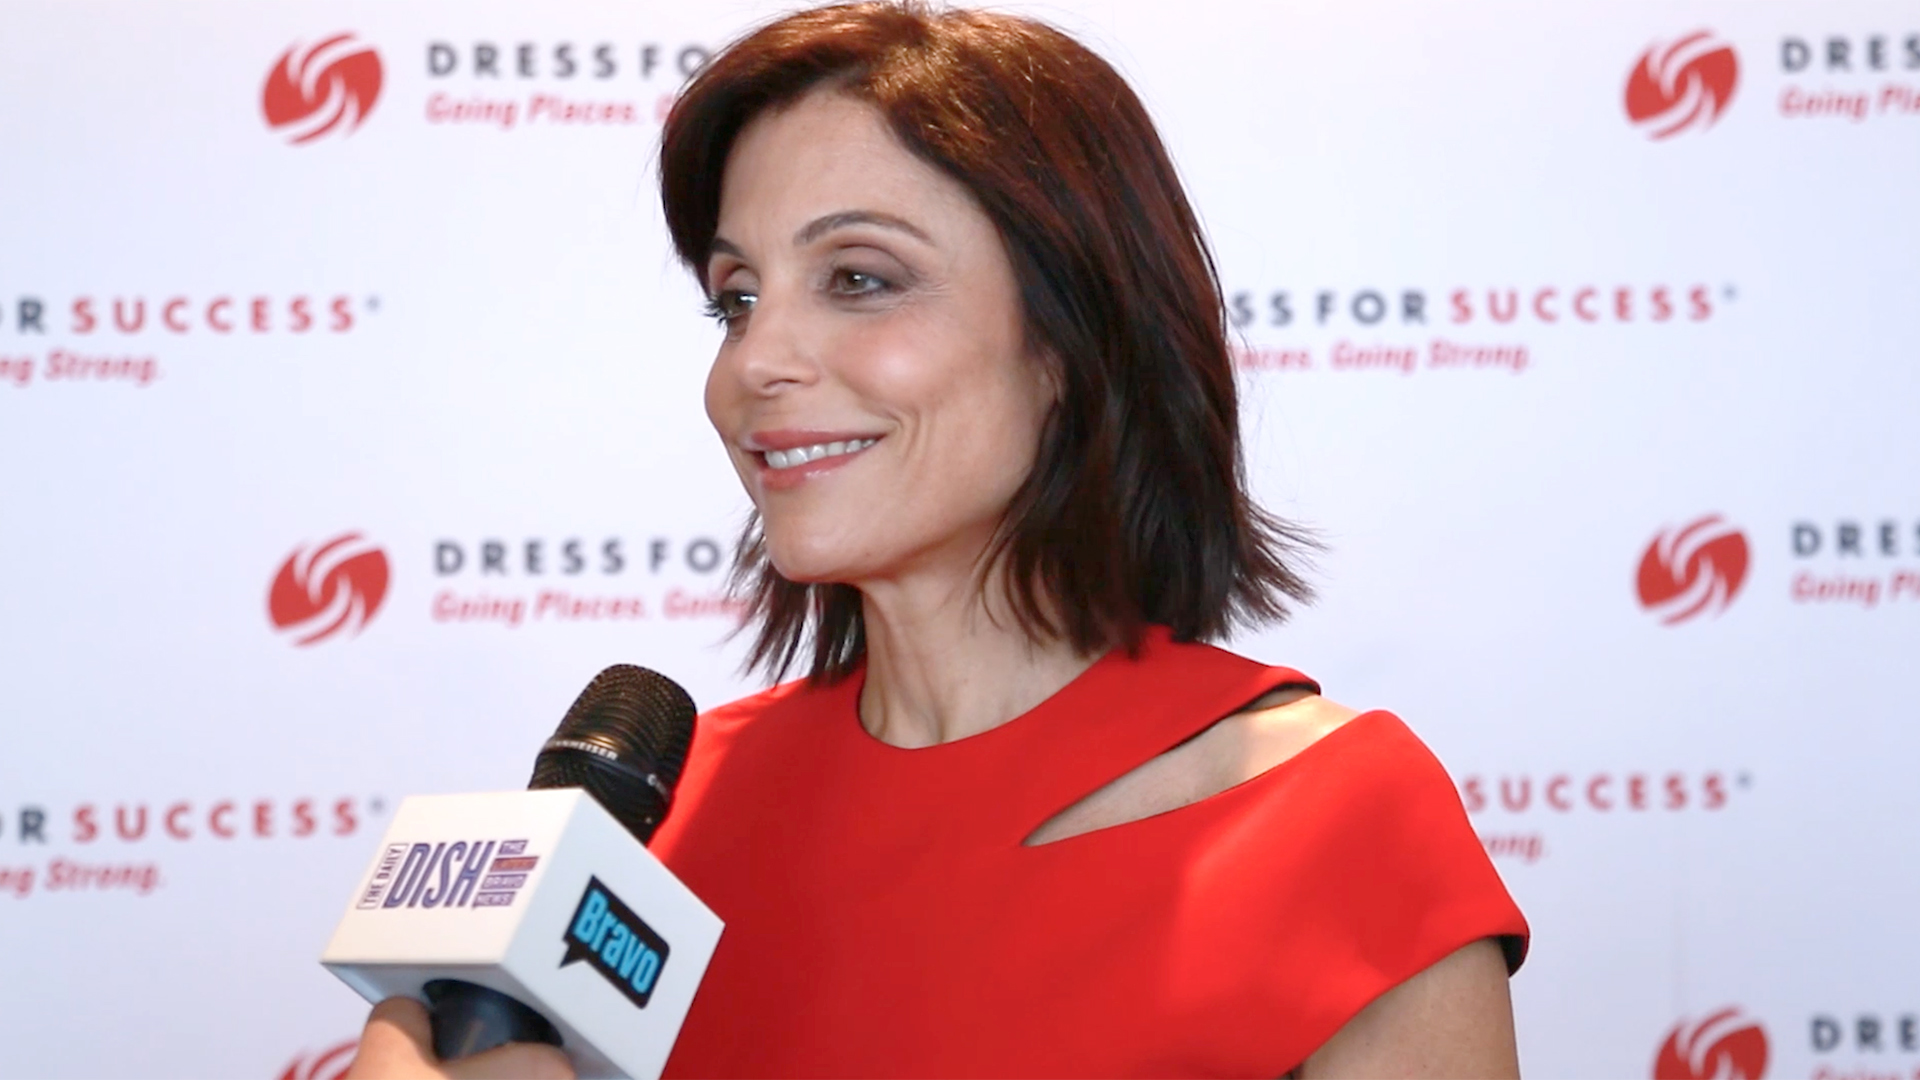 Bethenny Frankel nudes (15 fotos), hot Feet, Snapchat, cameltoe 2018